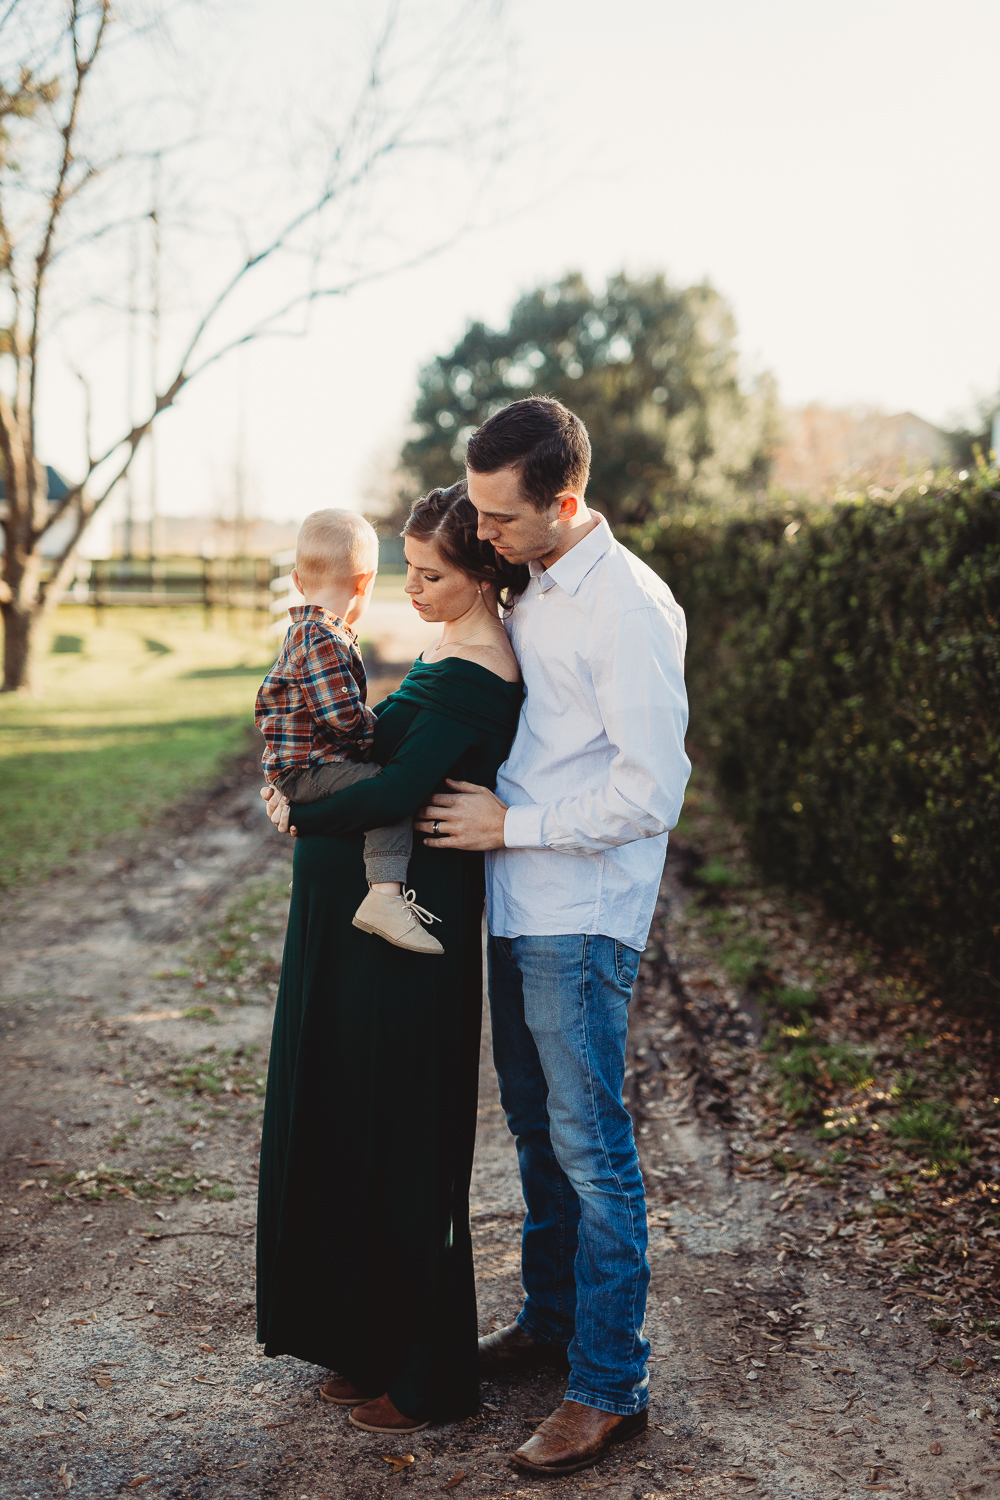 Woodlands-Photographer-Maternity-Lifestyle93.jpg